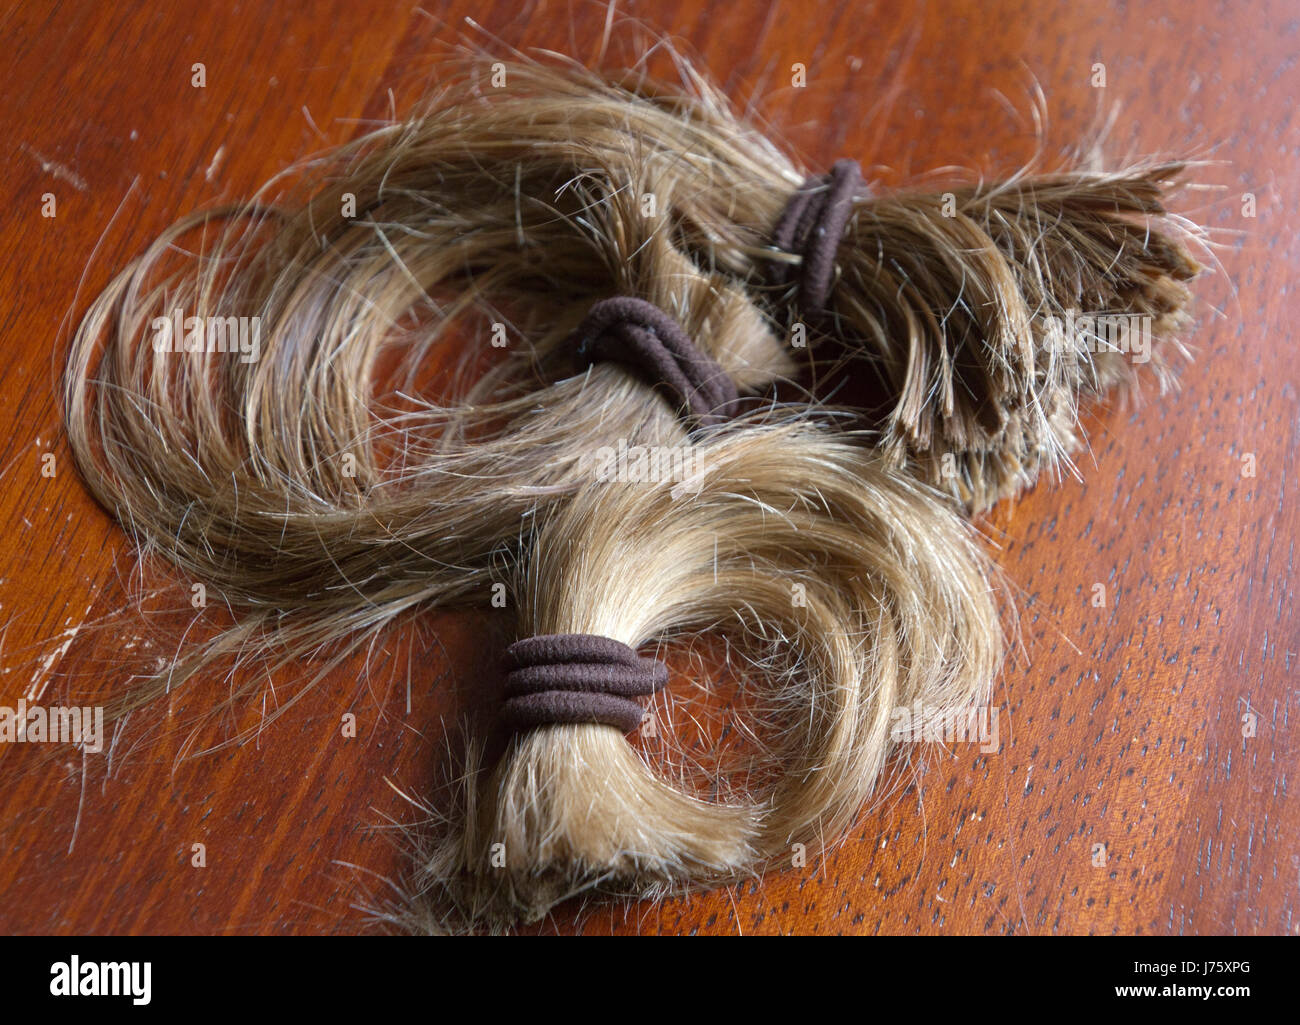 Close up of a thick, cut-off ponytail of long blond hair held